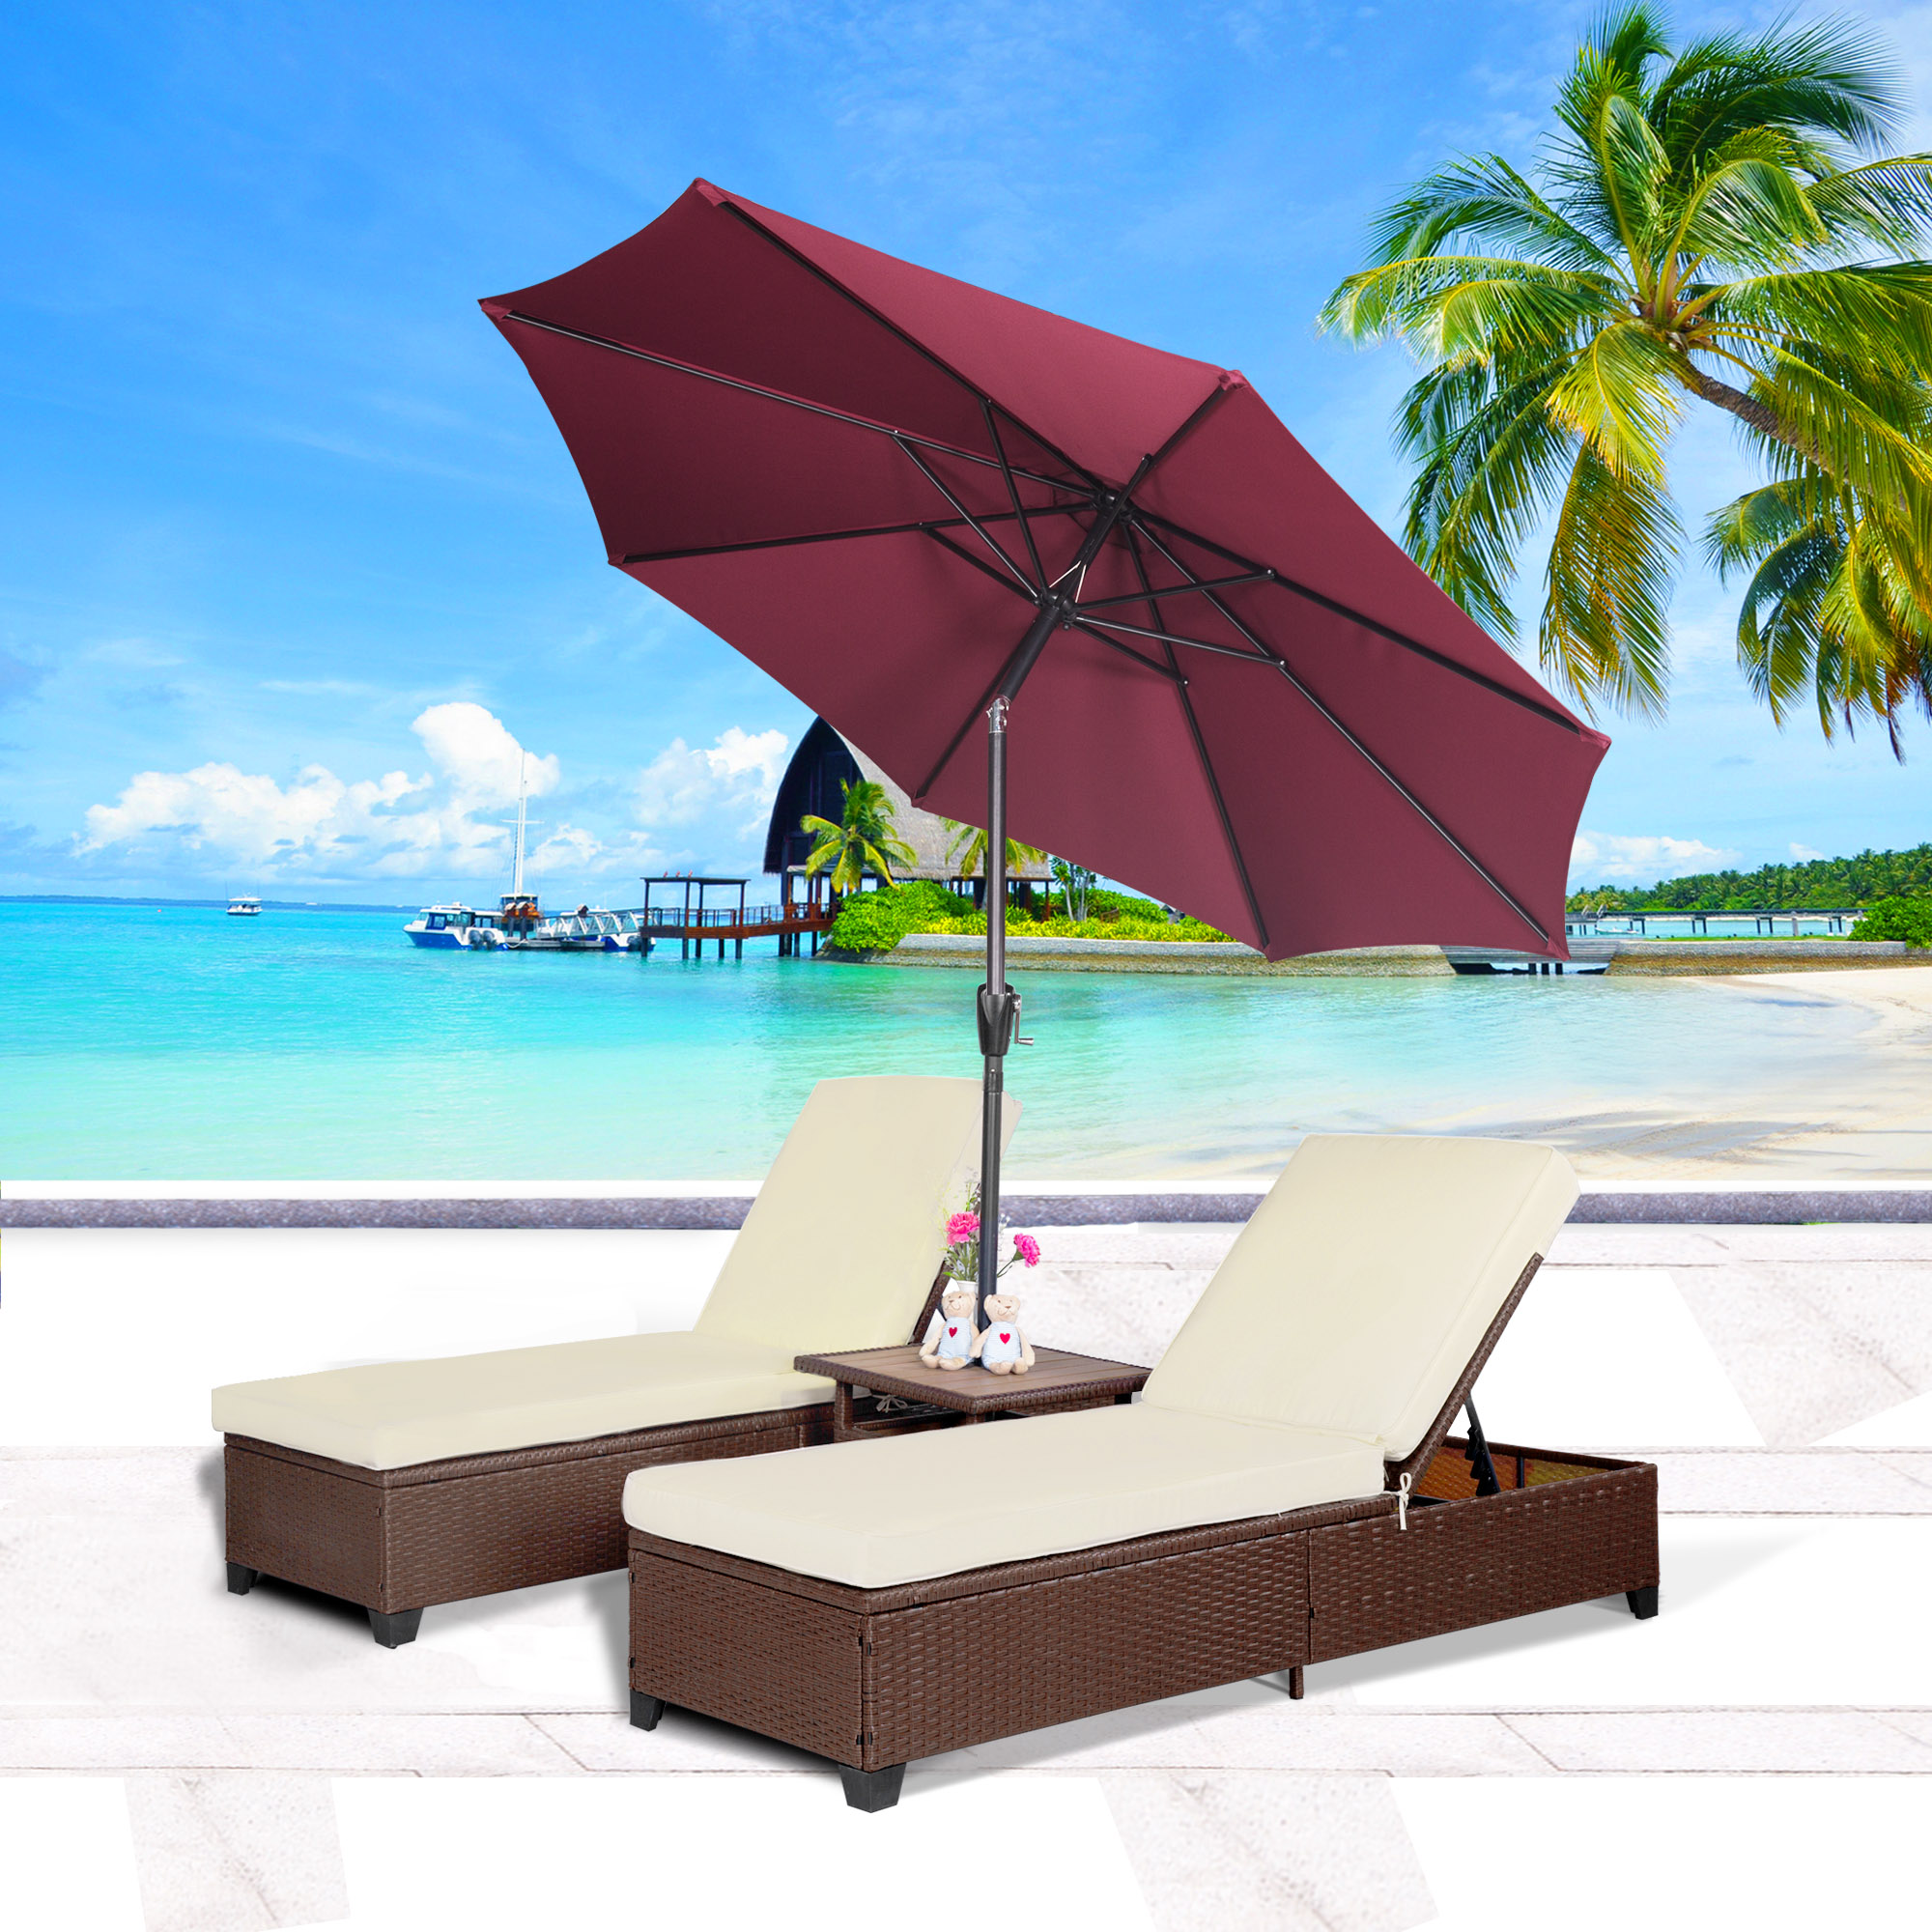 Cloud Mountain 4PC Outdoor Rattan Chaise Lounge Chair with 9' Umbrella Patio PE Wicker... by Cloud Mountain